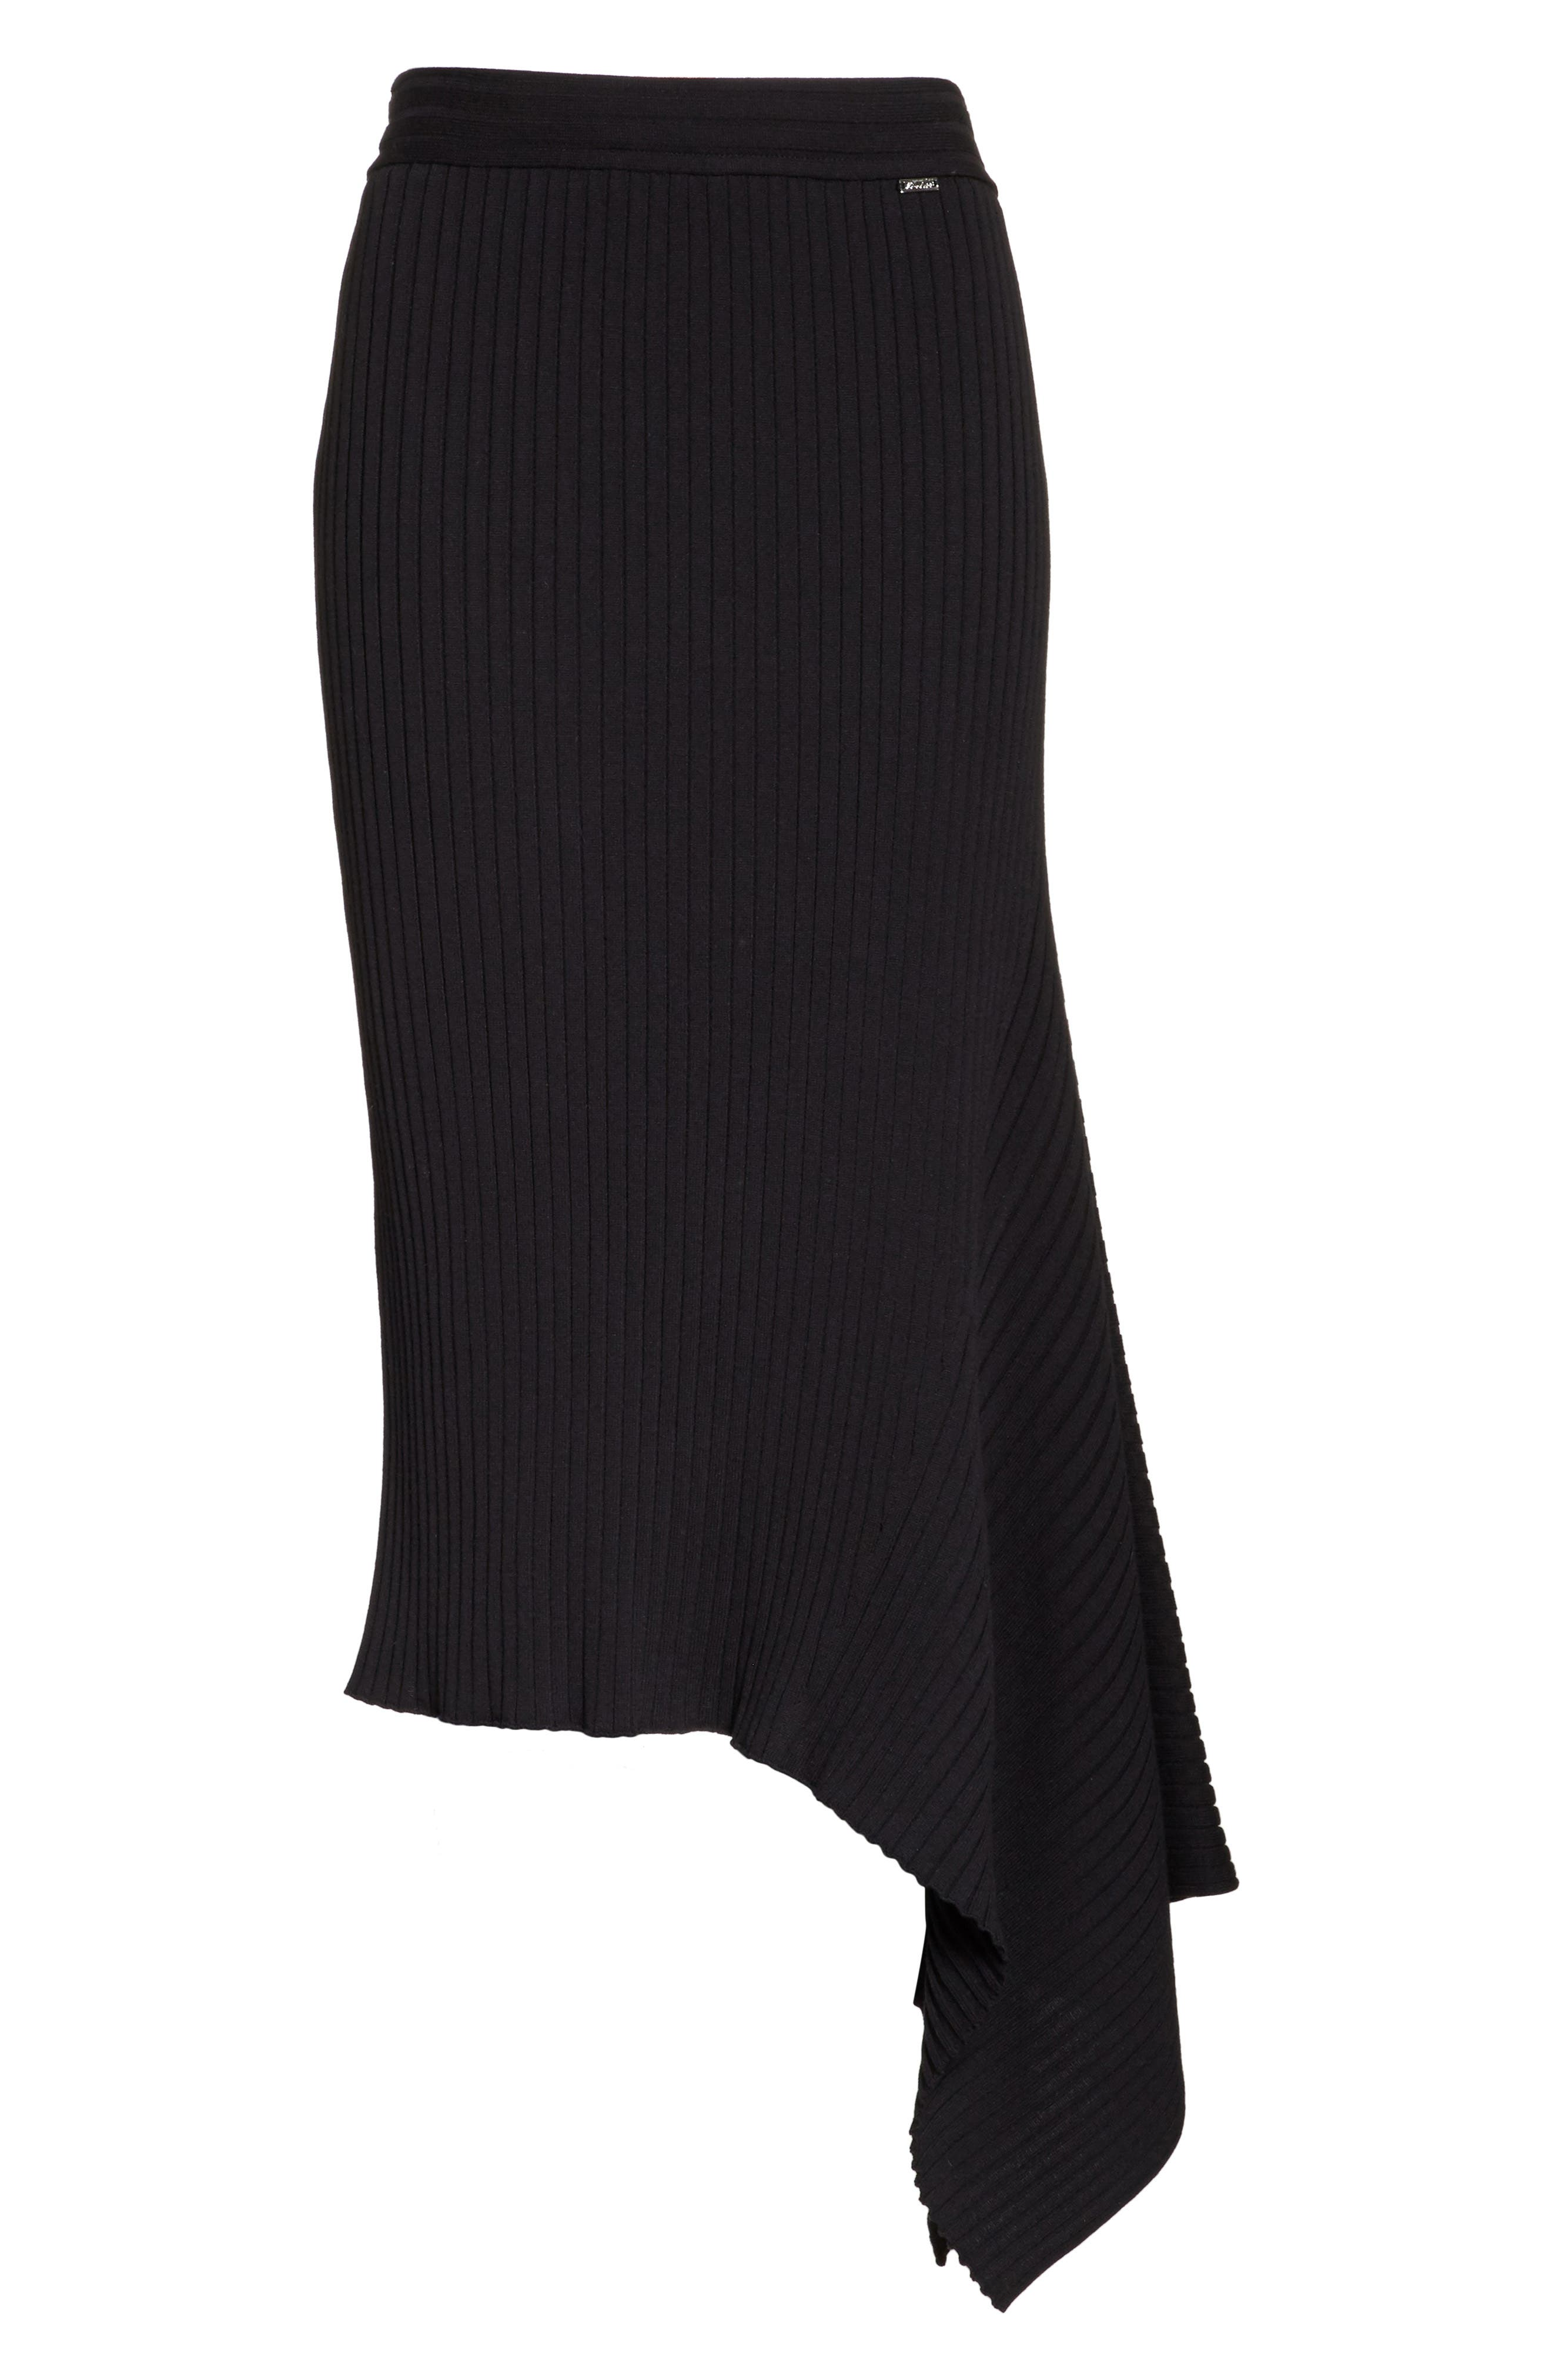 Flat Rib Knit Asymmetrical Skirt,                             Alternate thumbnail 7, color,                             Caviar